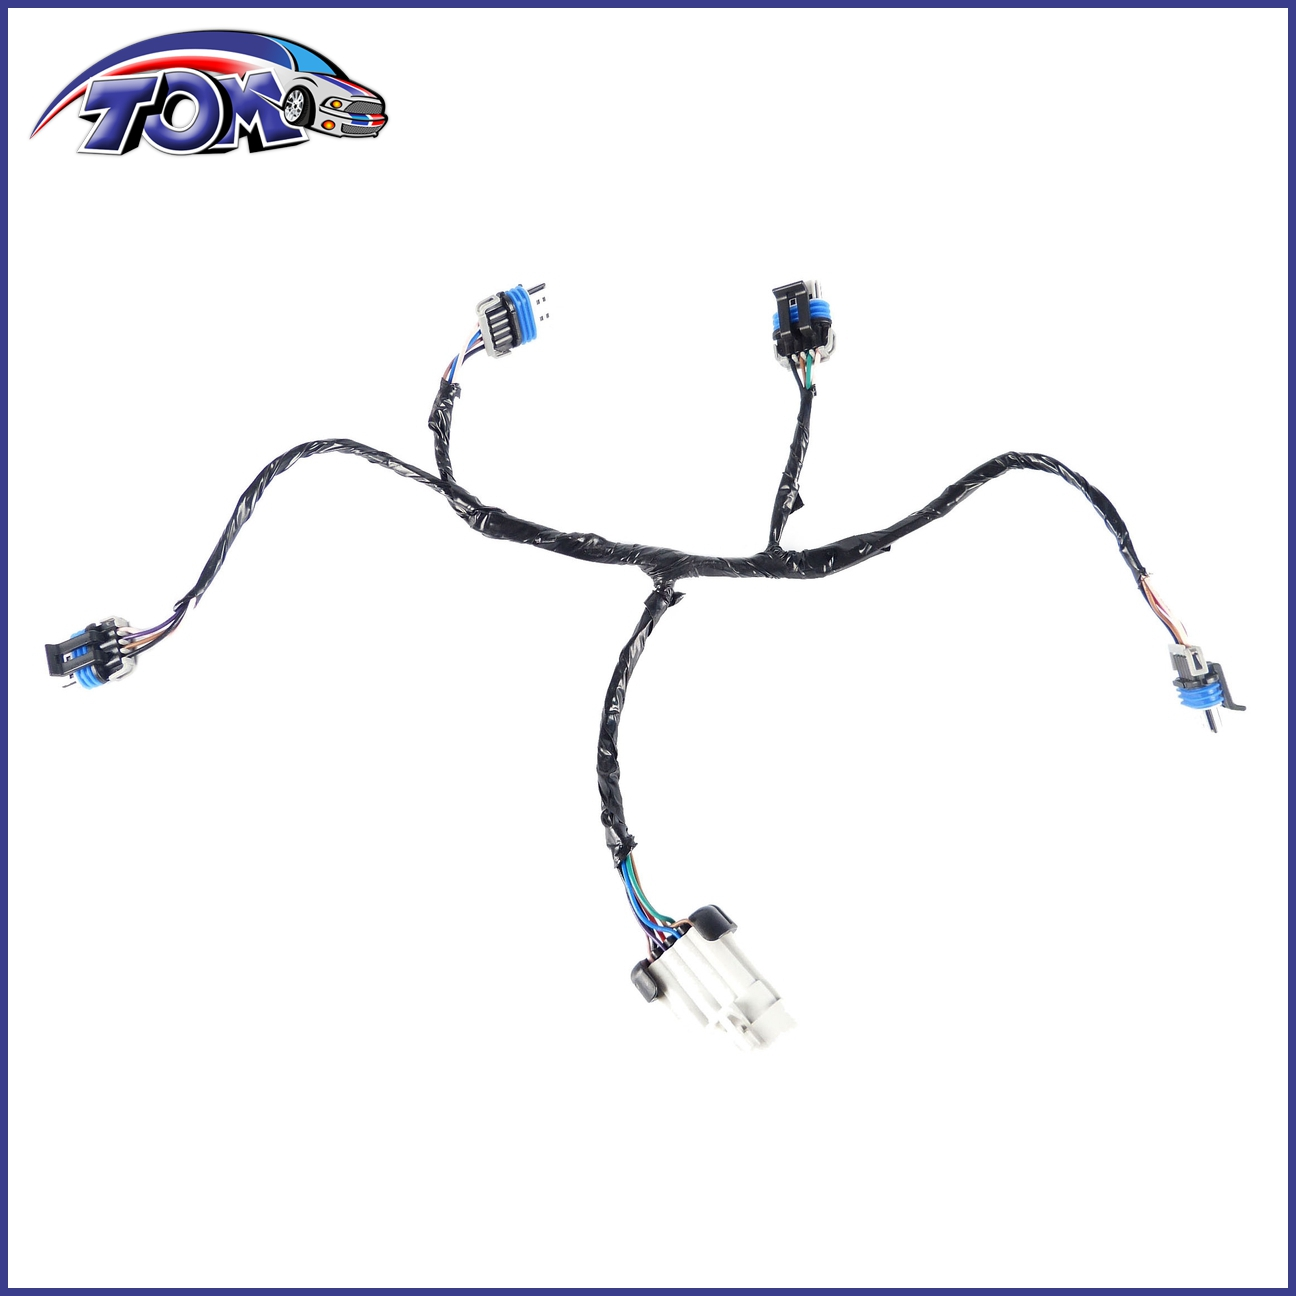 Brand New Ignition Coil Harness For Ls2 Ls4 Ls7